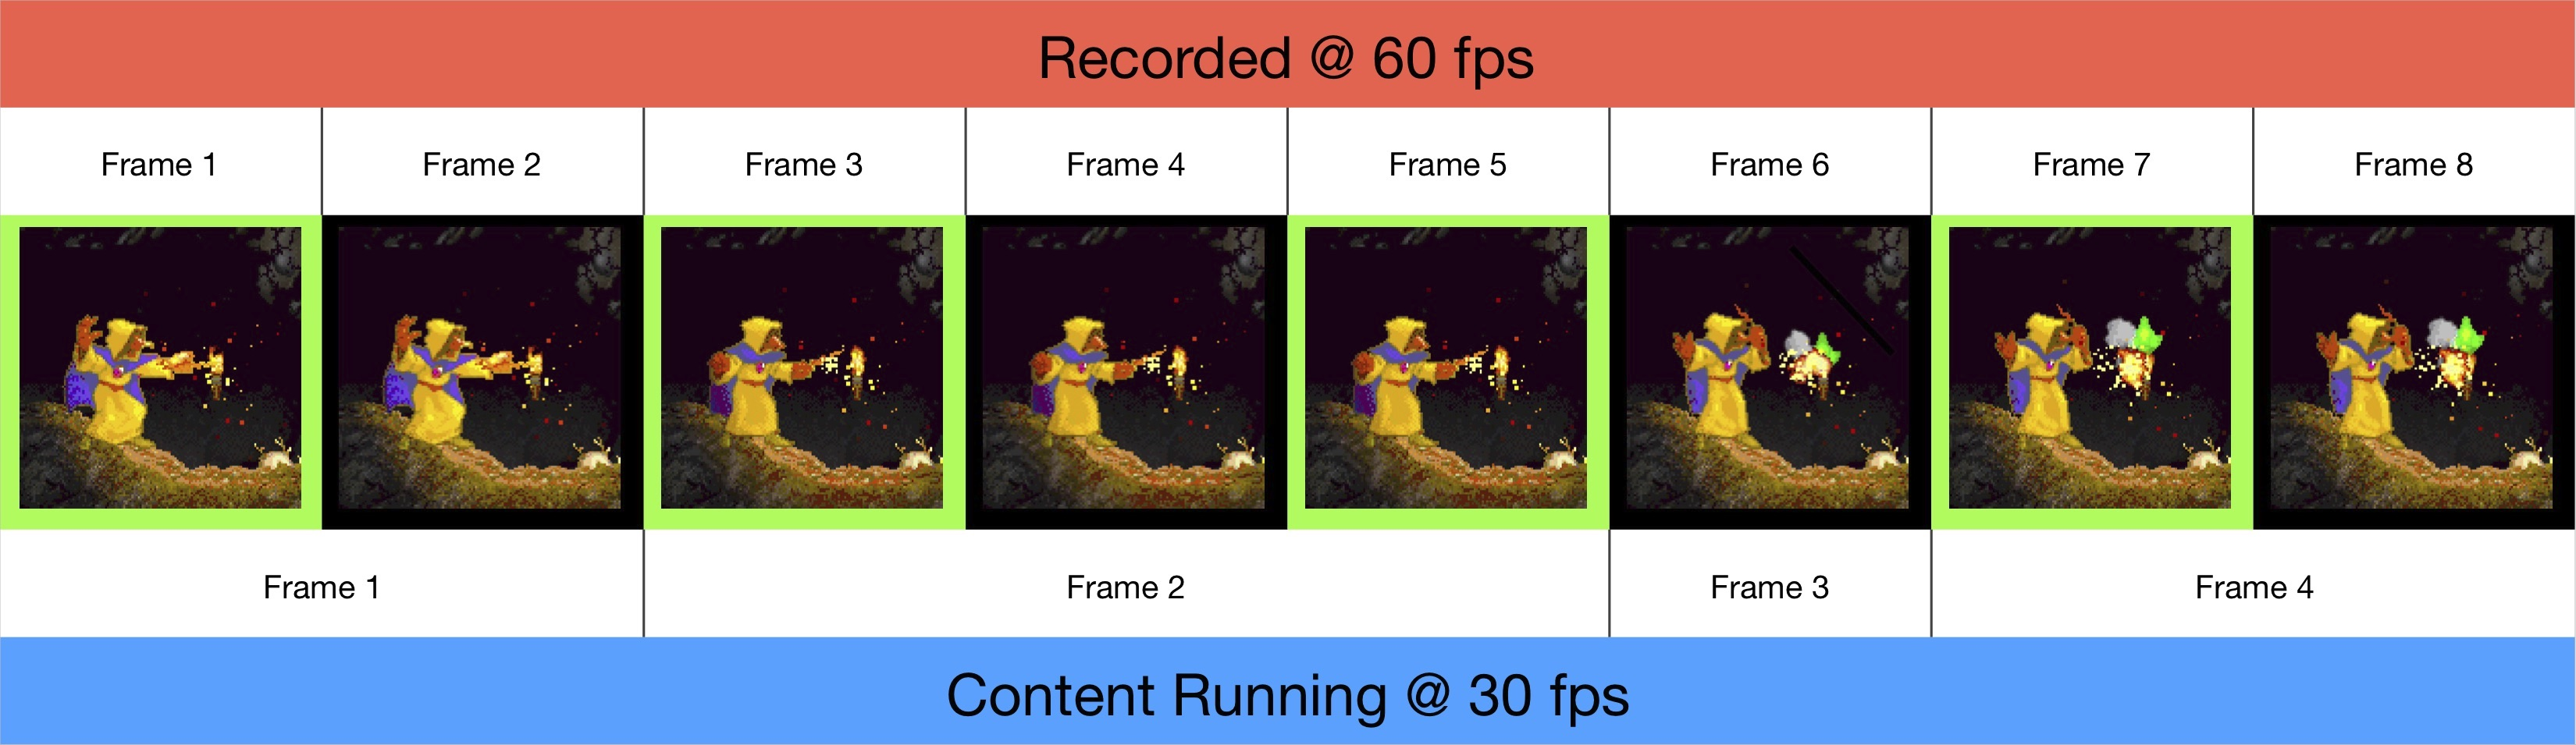 60fps video of 30fps content doesn't mean every frame is repeated exactly twice